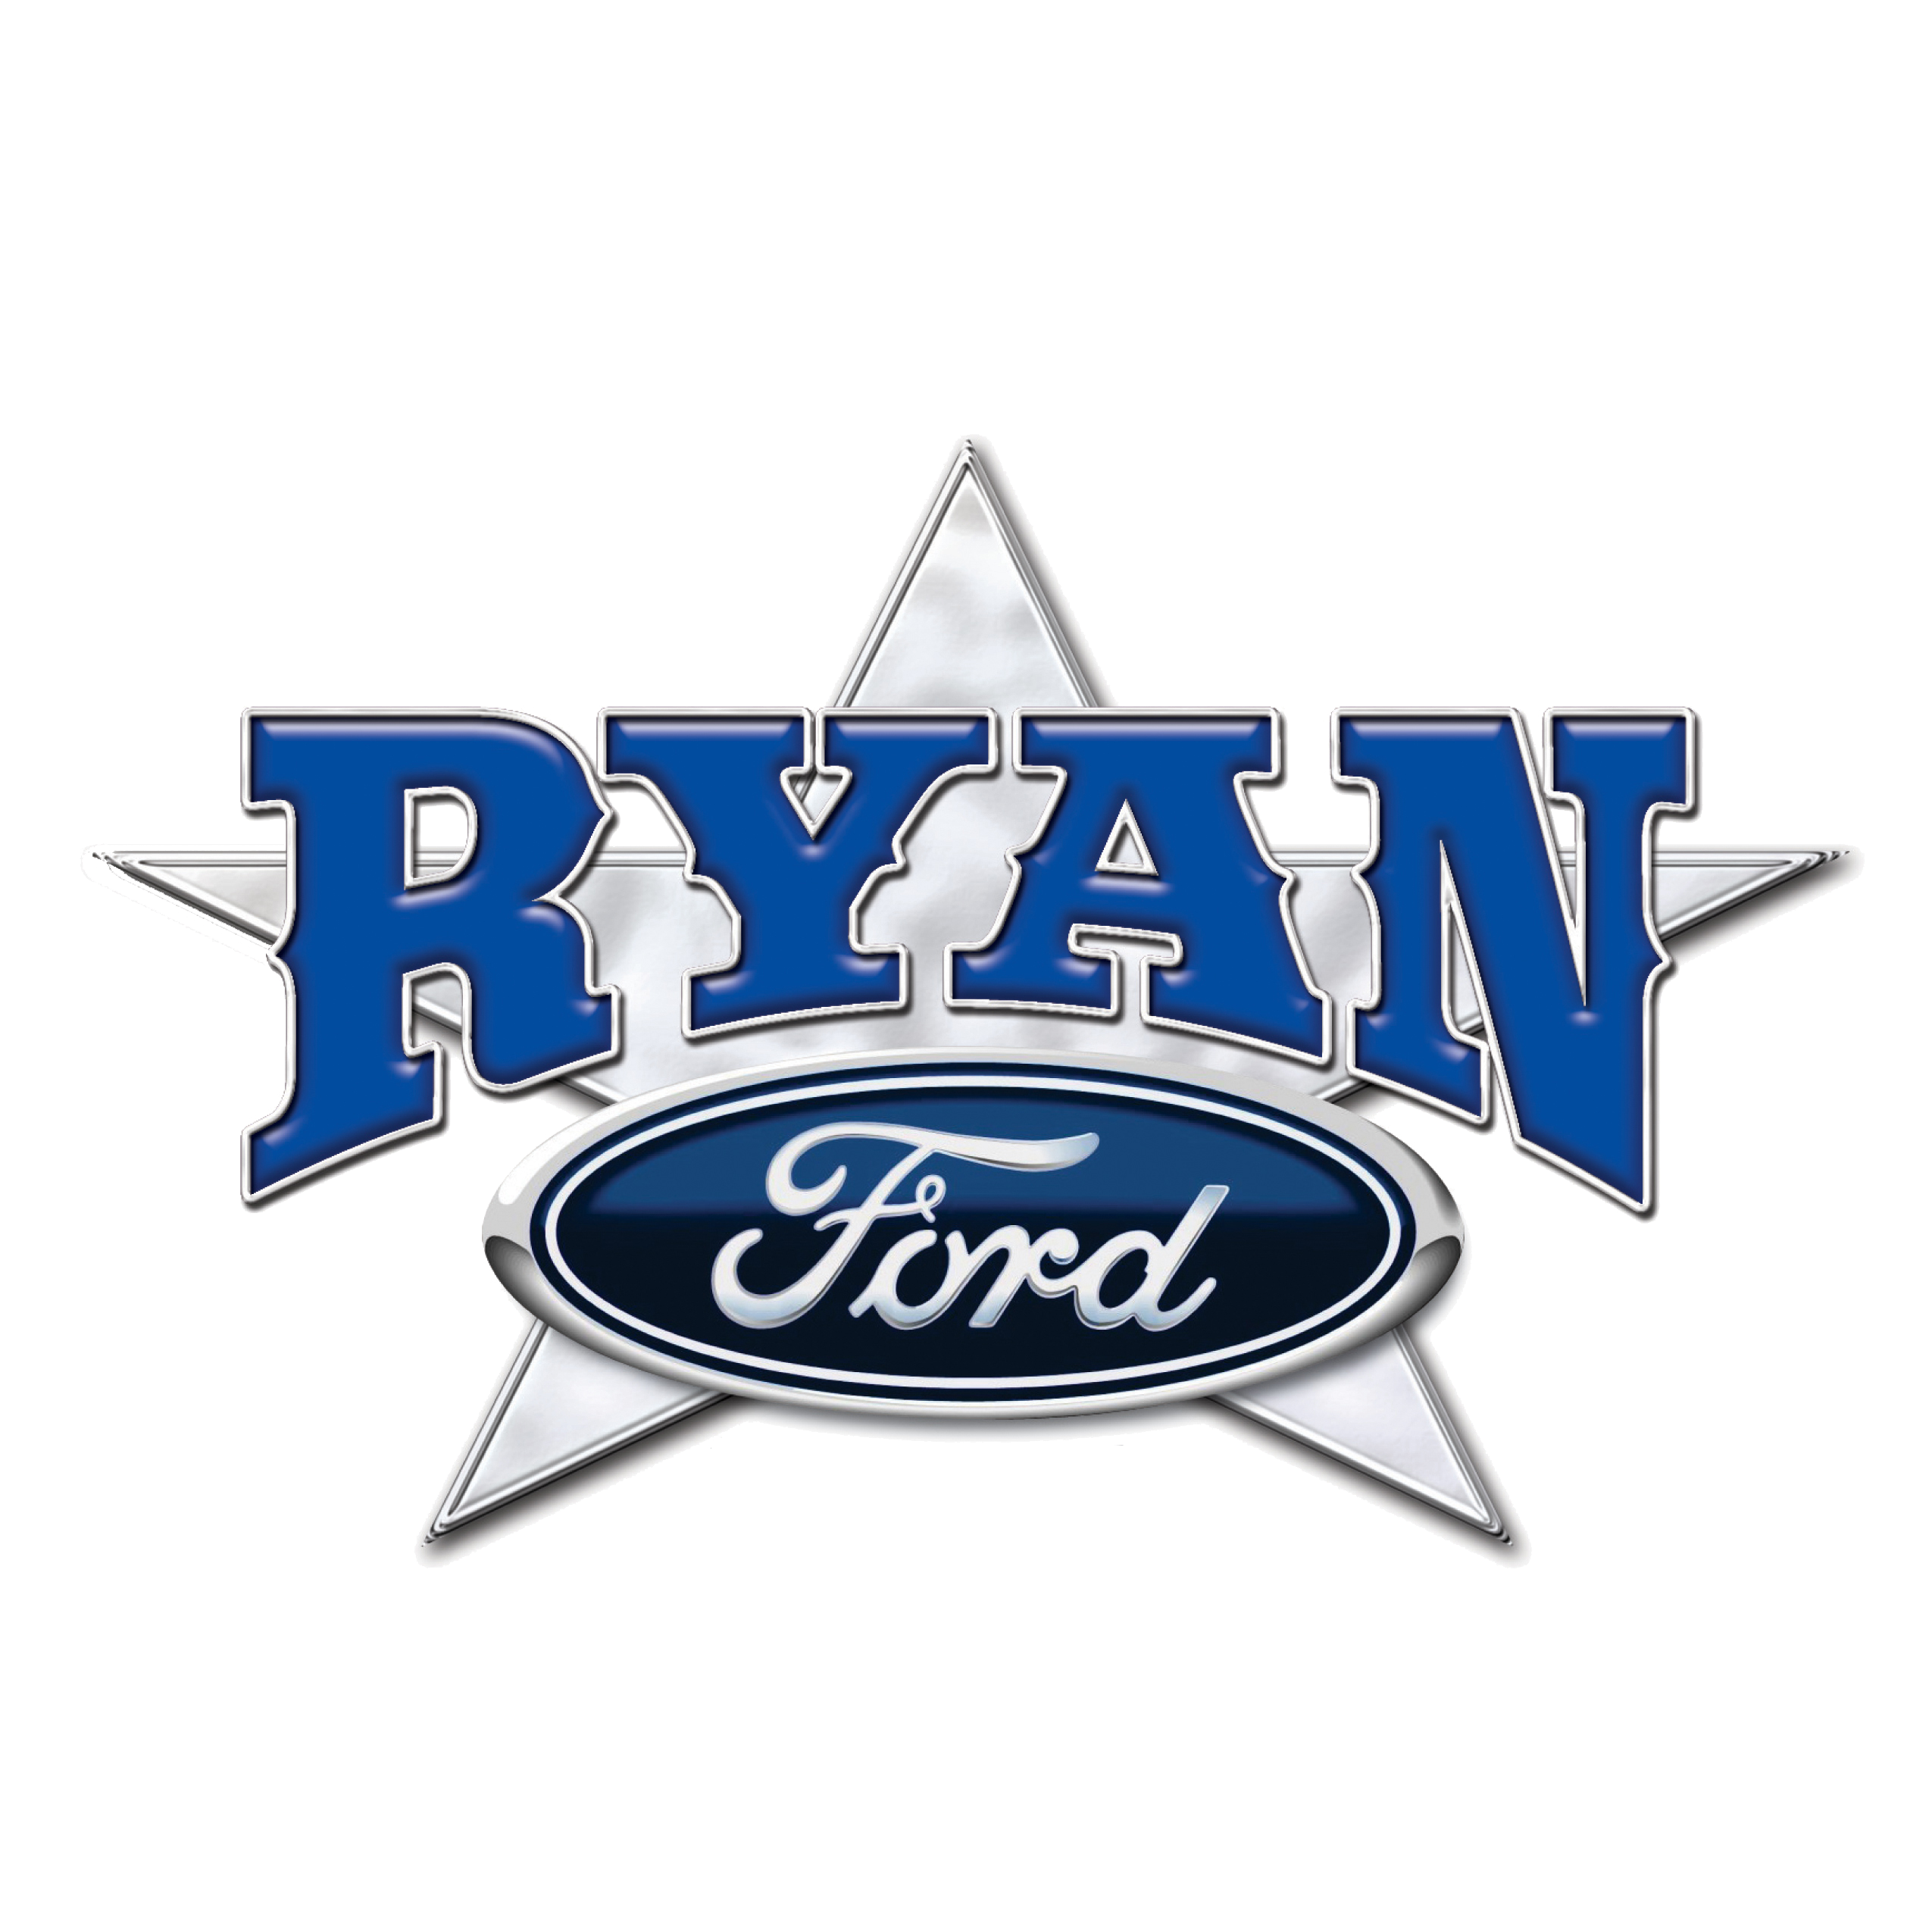 Ryan Ford Sealy >> Ryan Ford Coupons near me in Sealy | 8coupons